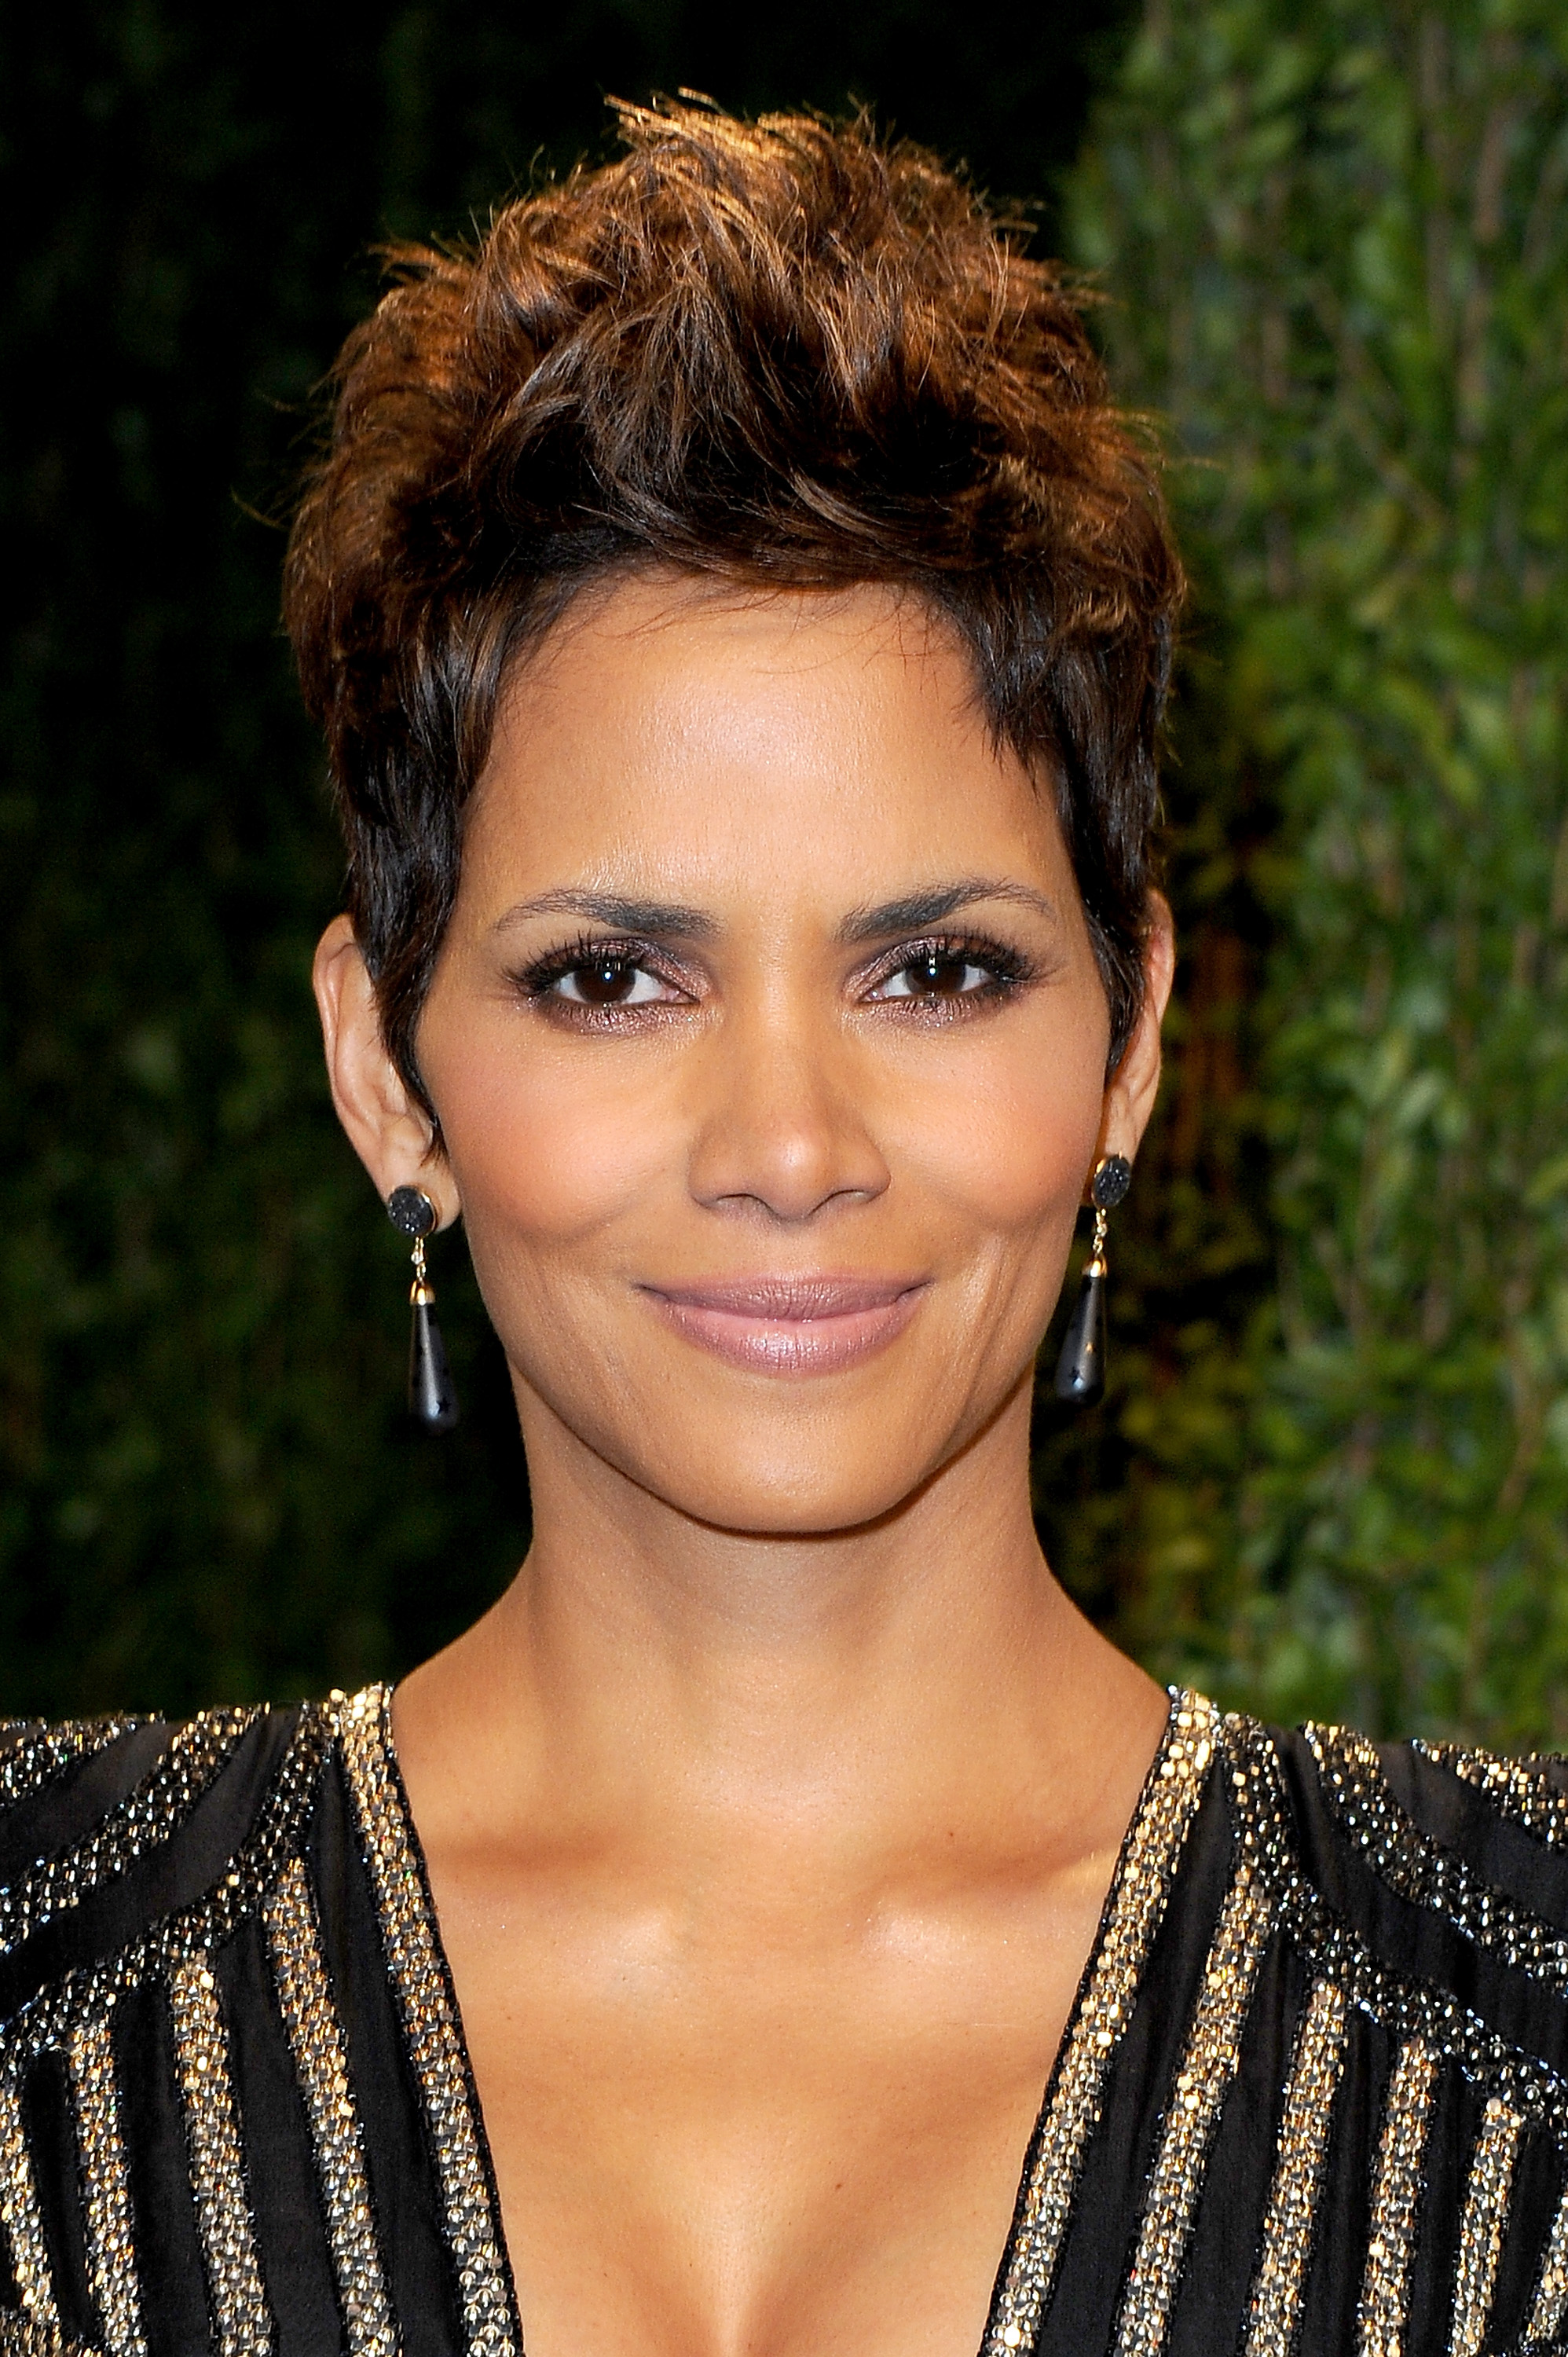 Halle Berry arrived at the Vanity Fair Oscar party on Sunday night.